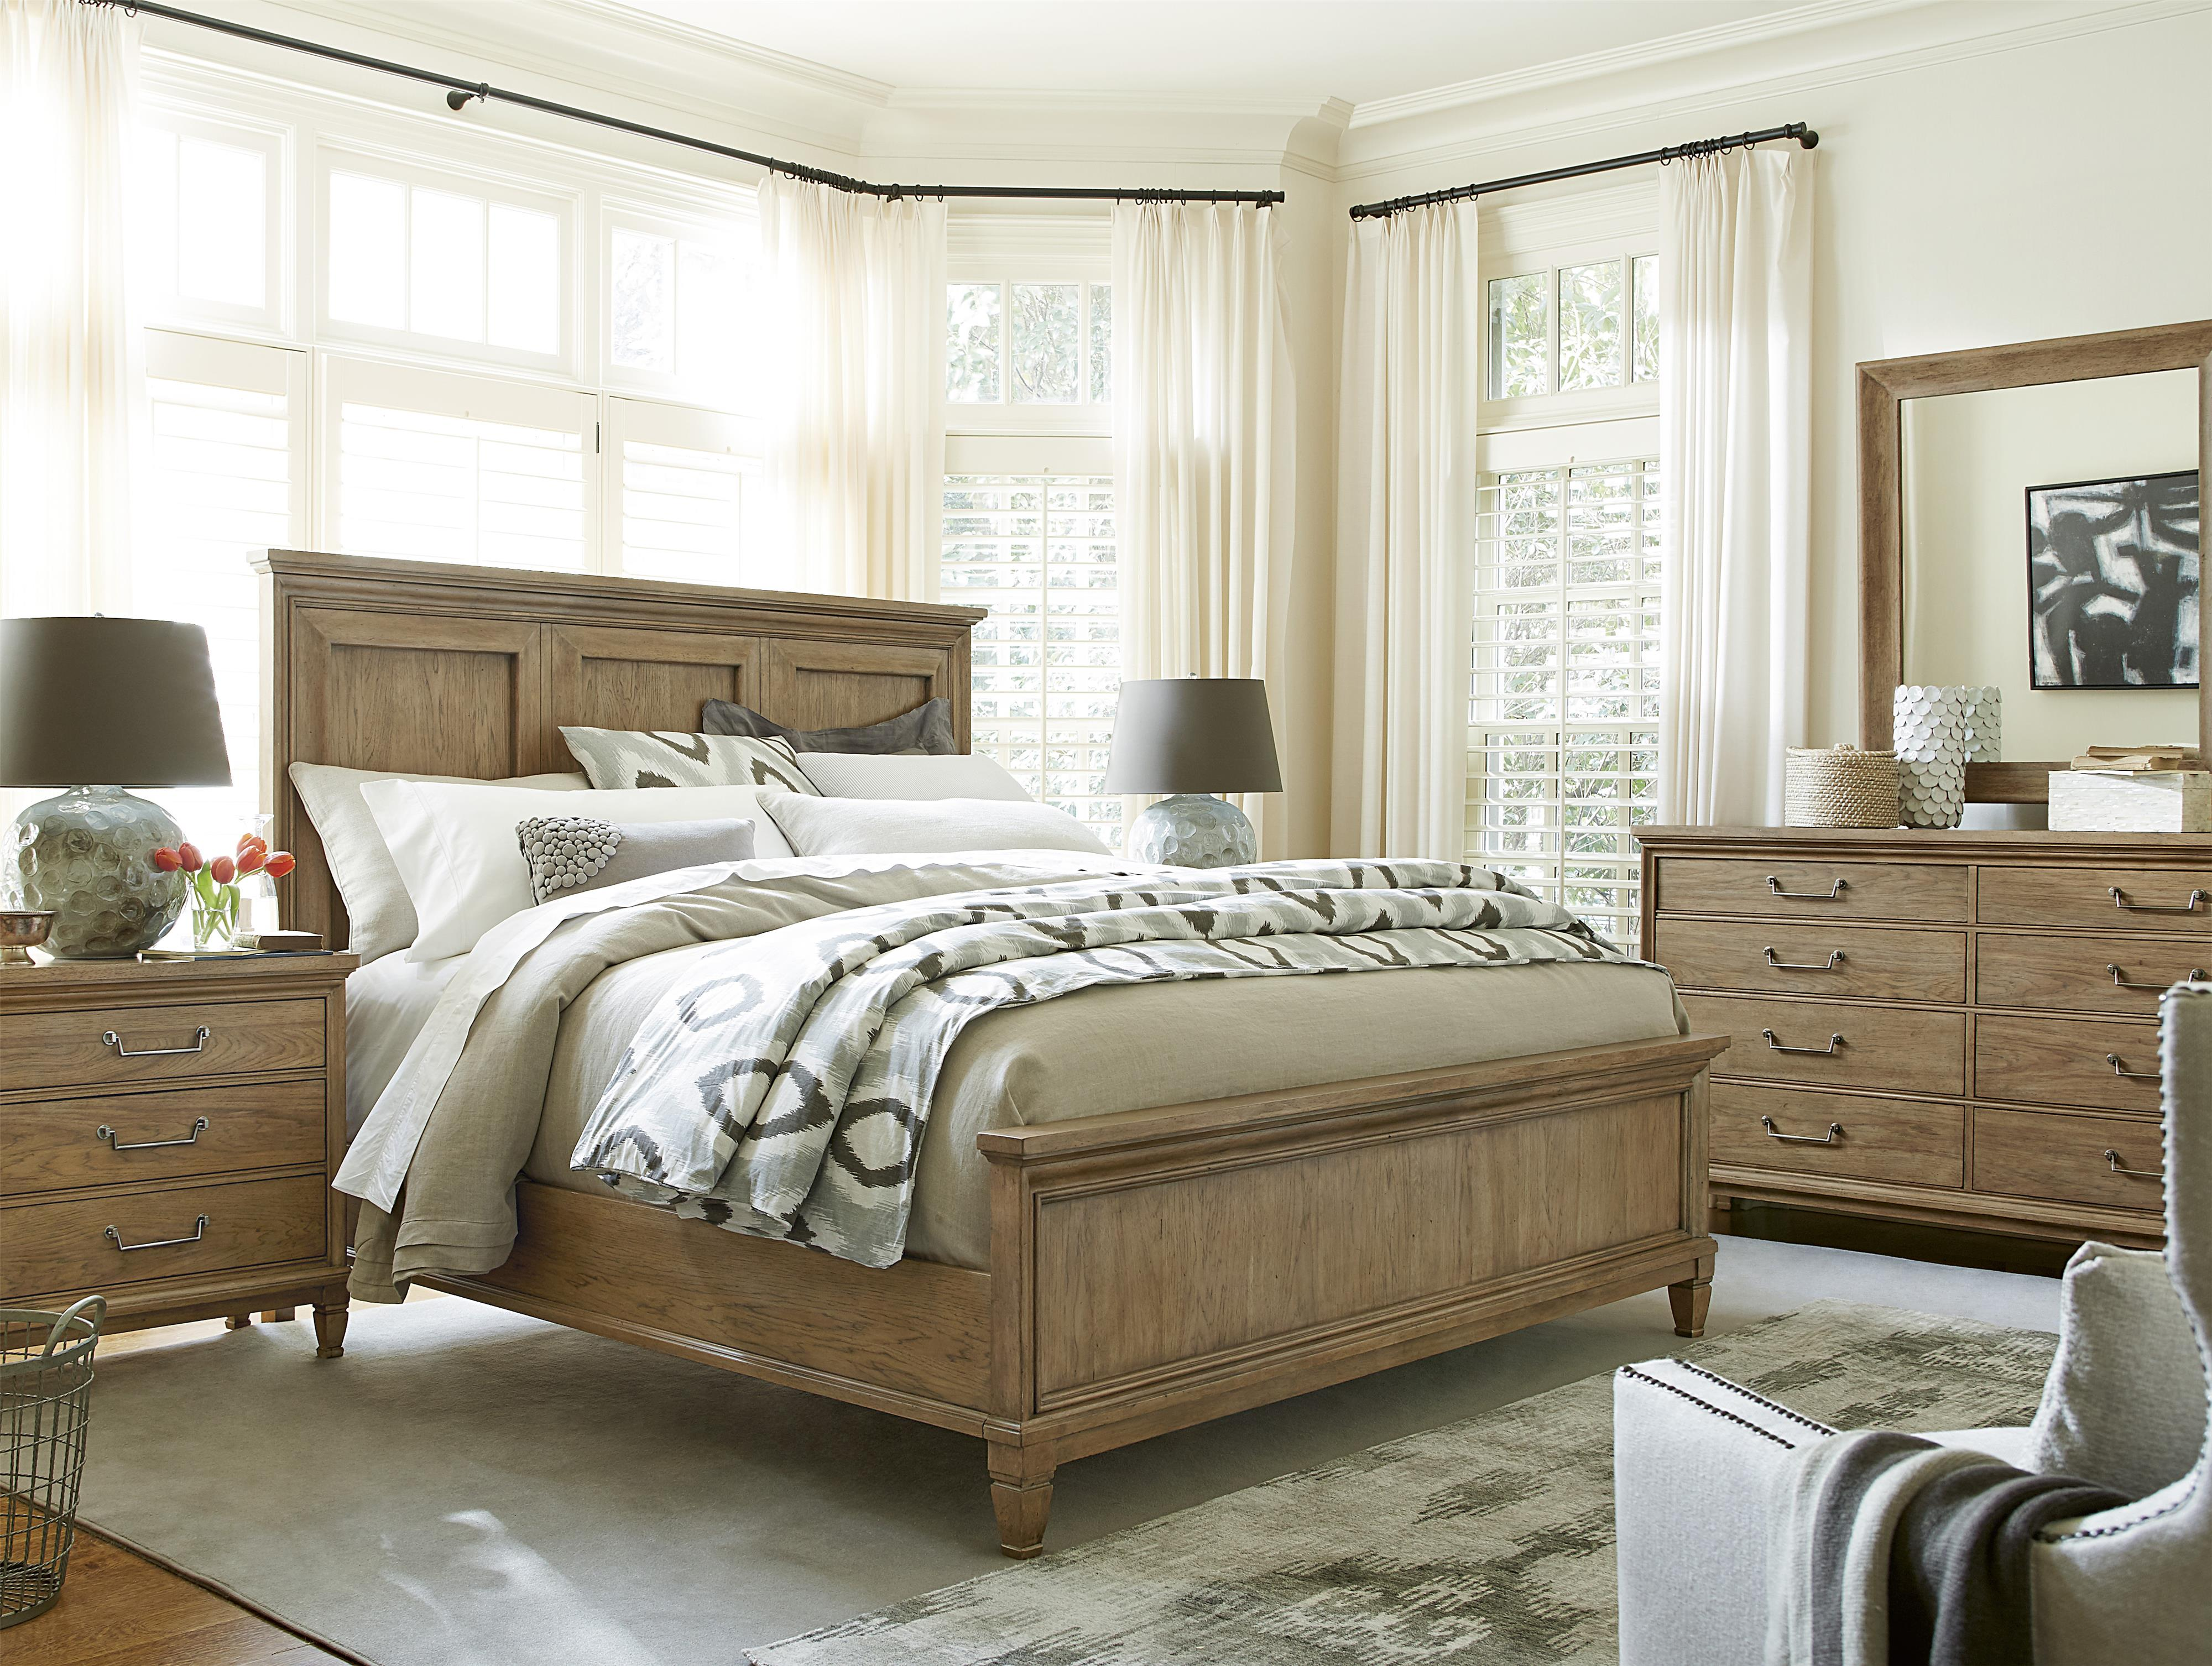 Universal Moderne Muse California King Bedroom Group - Item Number: 414 CK Bedroom Group 1